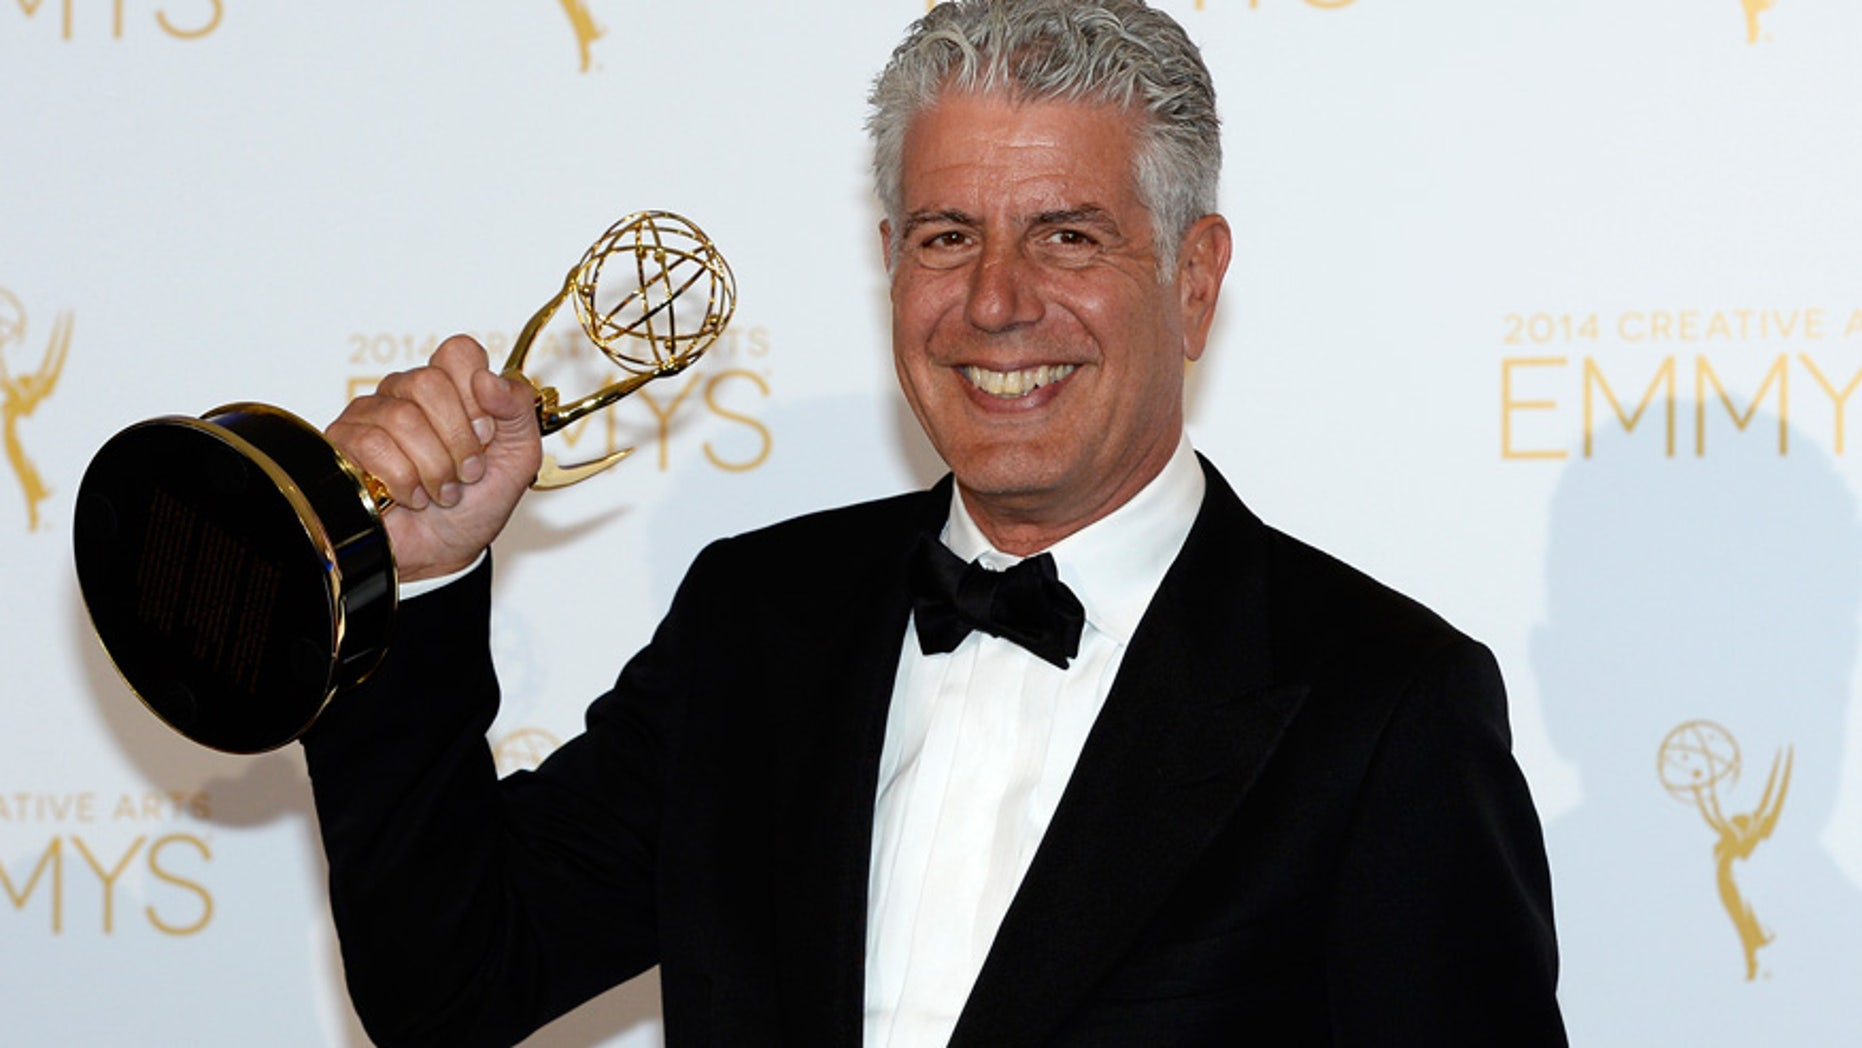 """Anthony Bourdain poses backstage with the Emmy for Outstanding Informational Series """"Anthony Bourdain: Parts Unknown"""" at the 2014 Creative Arts Emmy Awards in Los Angeles."""